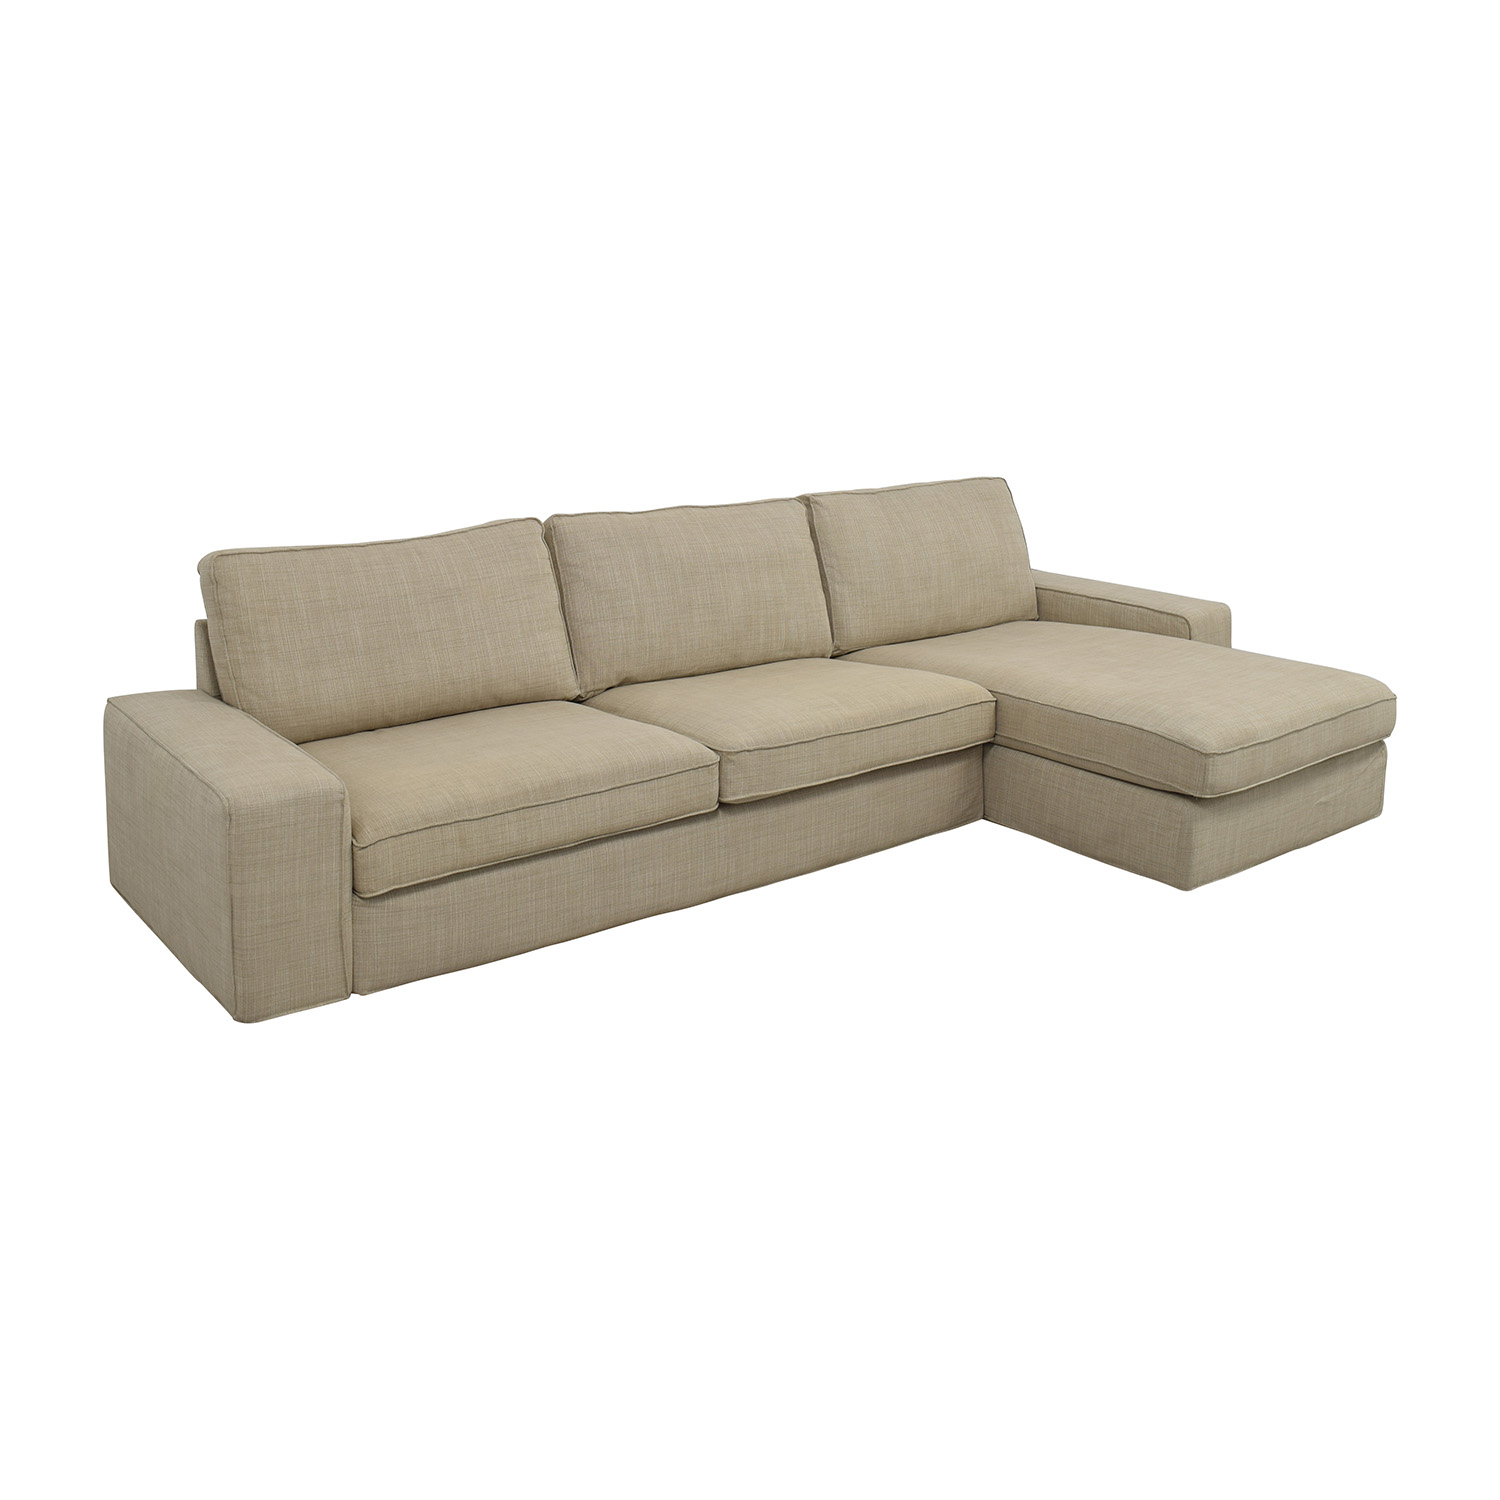 sofas in ikea quick sofa score ppt 50 off kivik sectional hillared beige